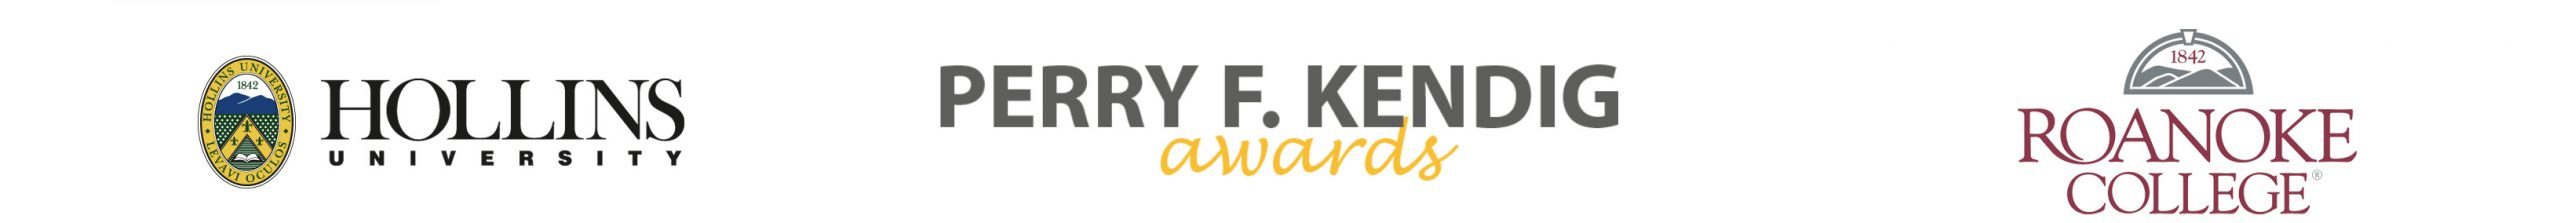 The Perry F. Kendig Arts and Culture Awards Logo